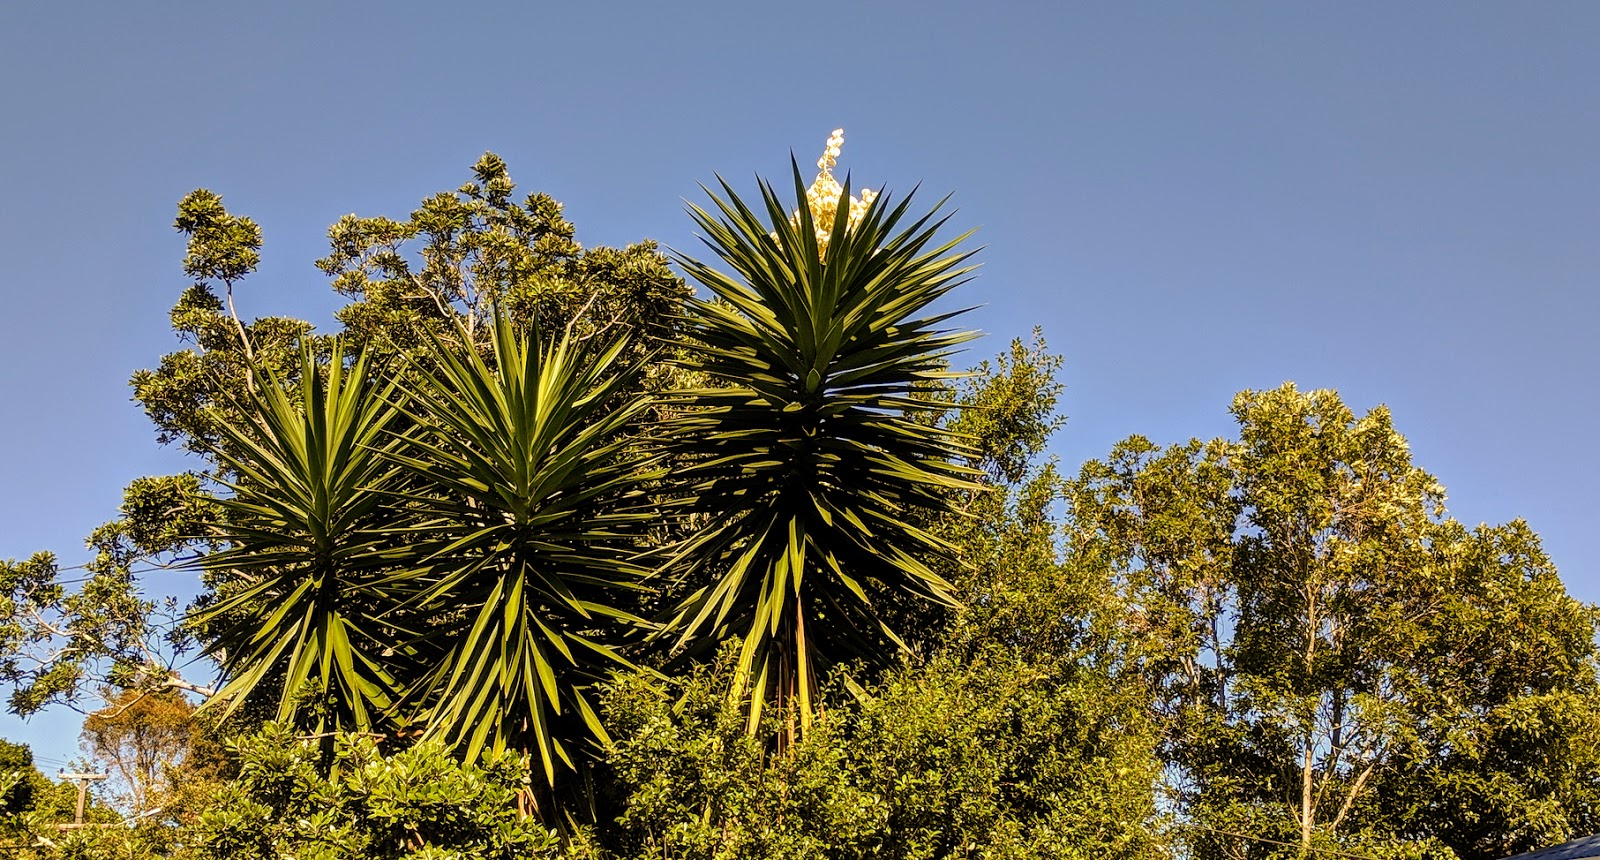 Mei and John: Yucca type tree with flowers up top, in neighbours garden